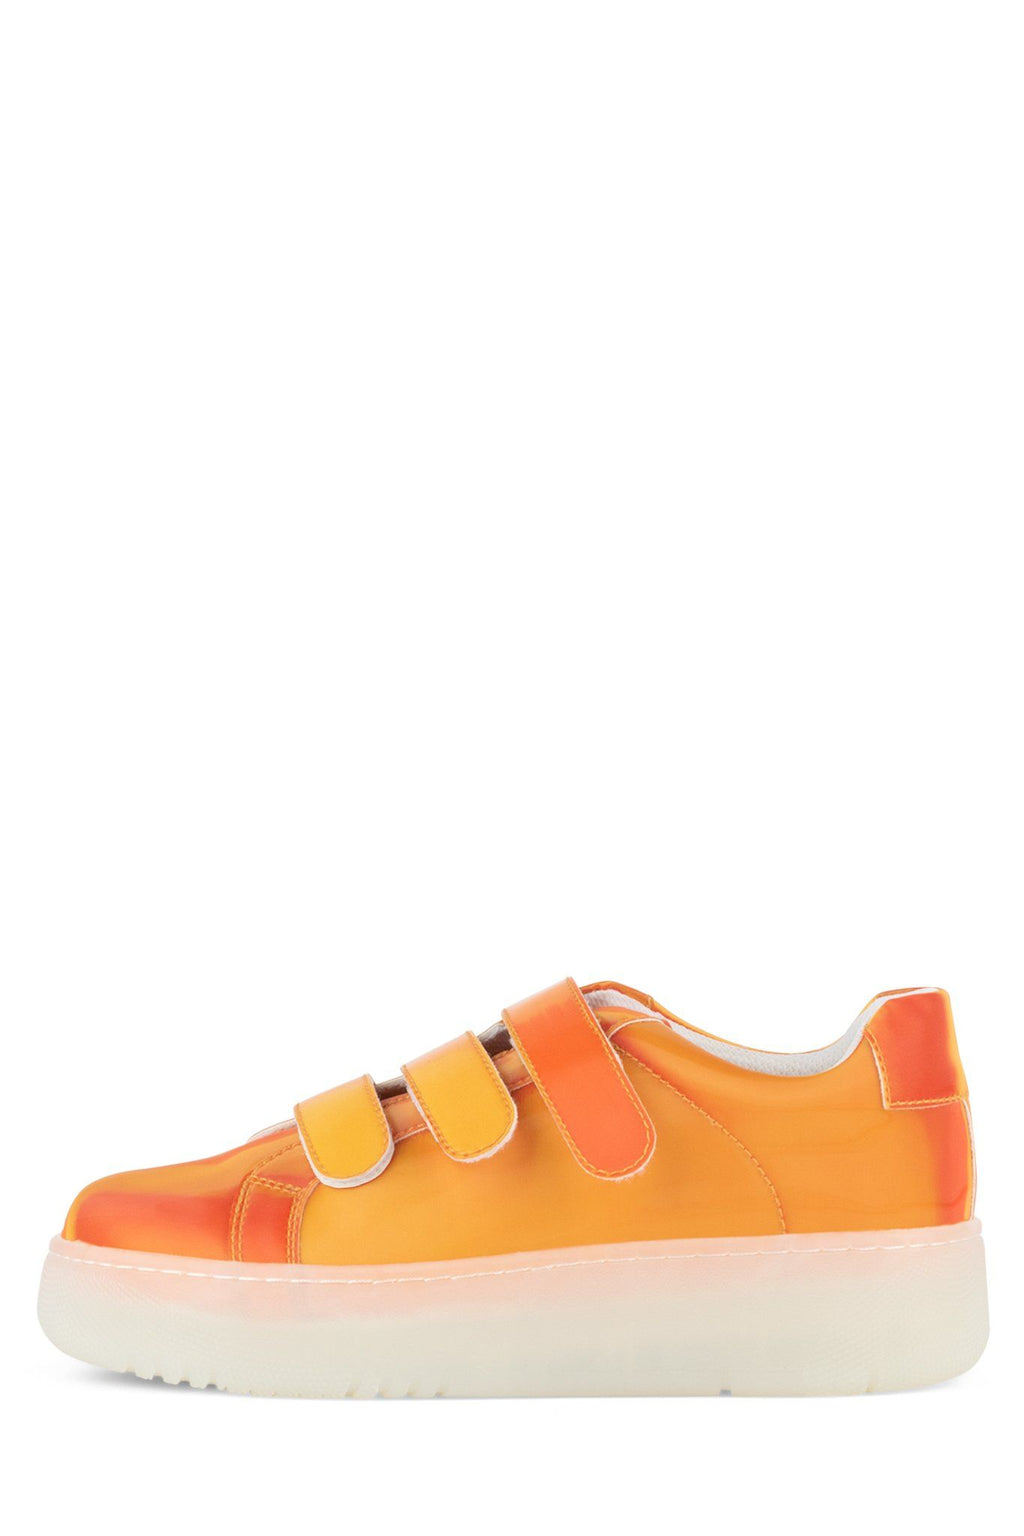 COURT-3S Sneaker Jeffrey Campbell Orange Holographic 6